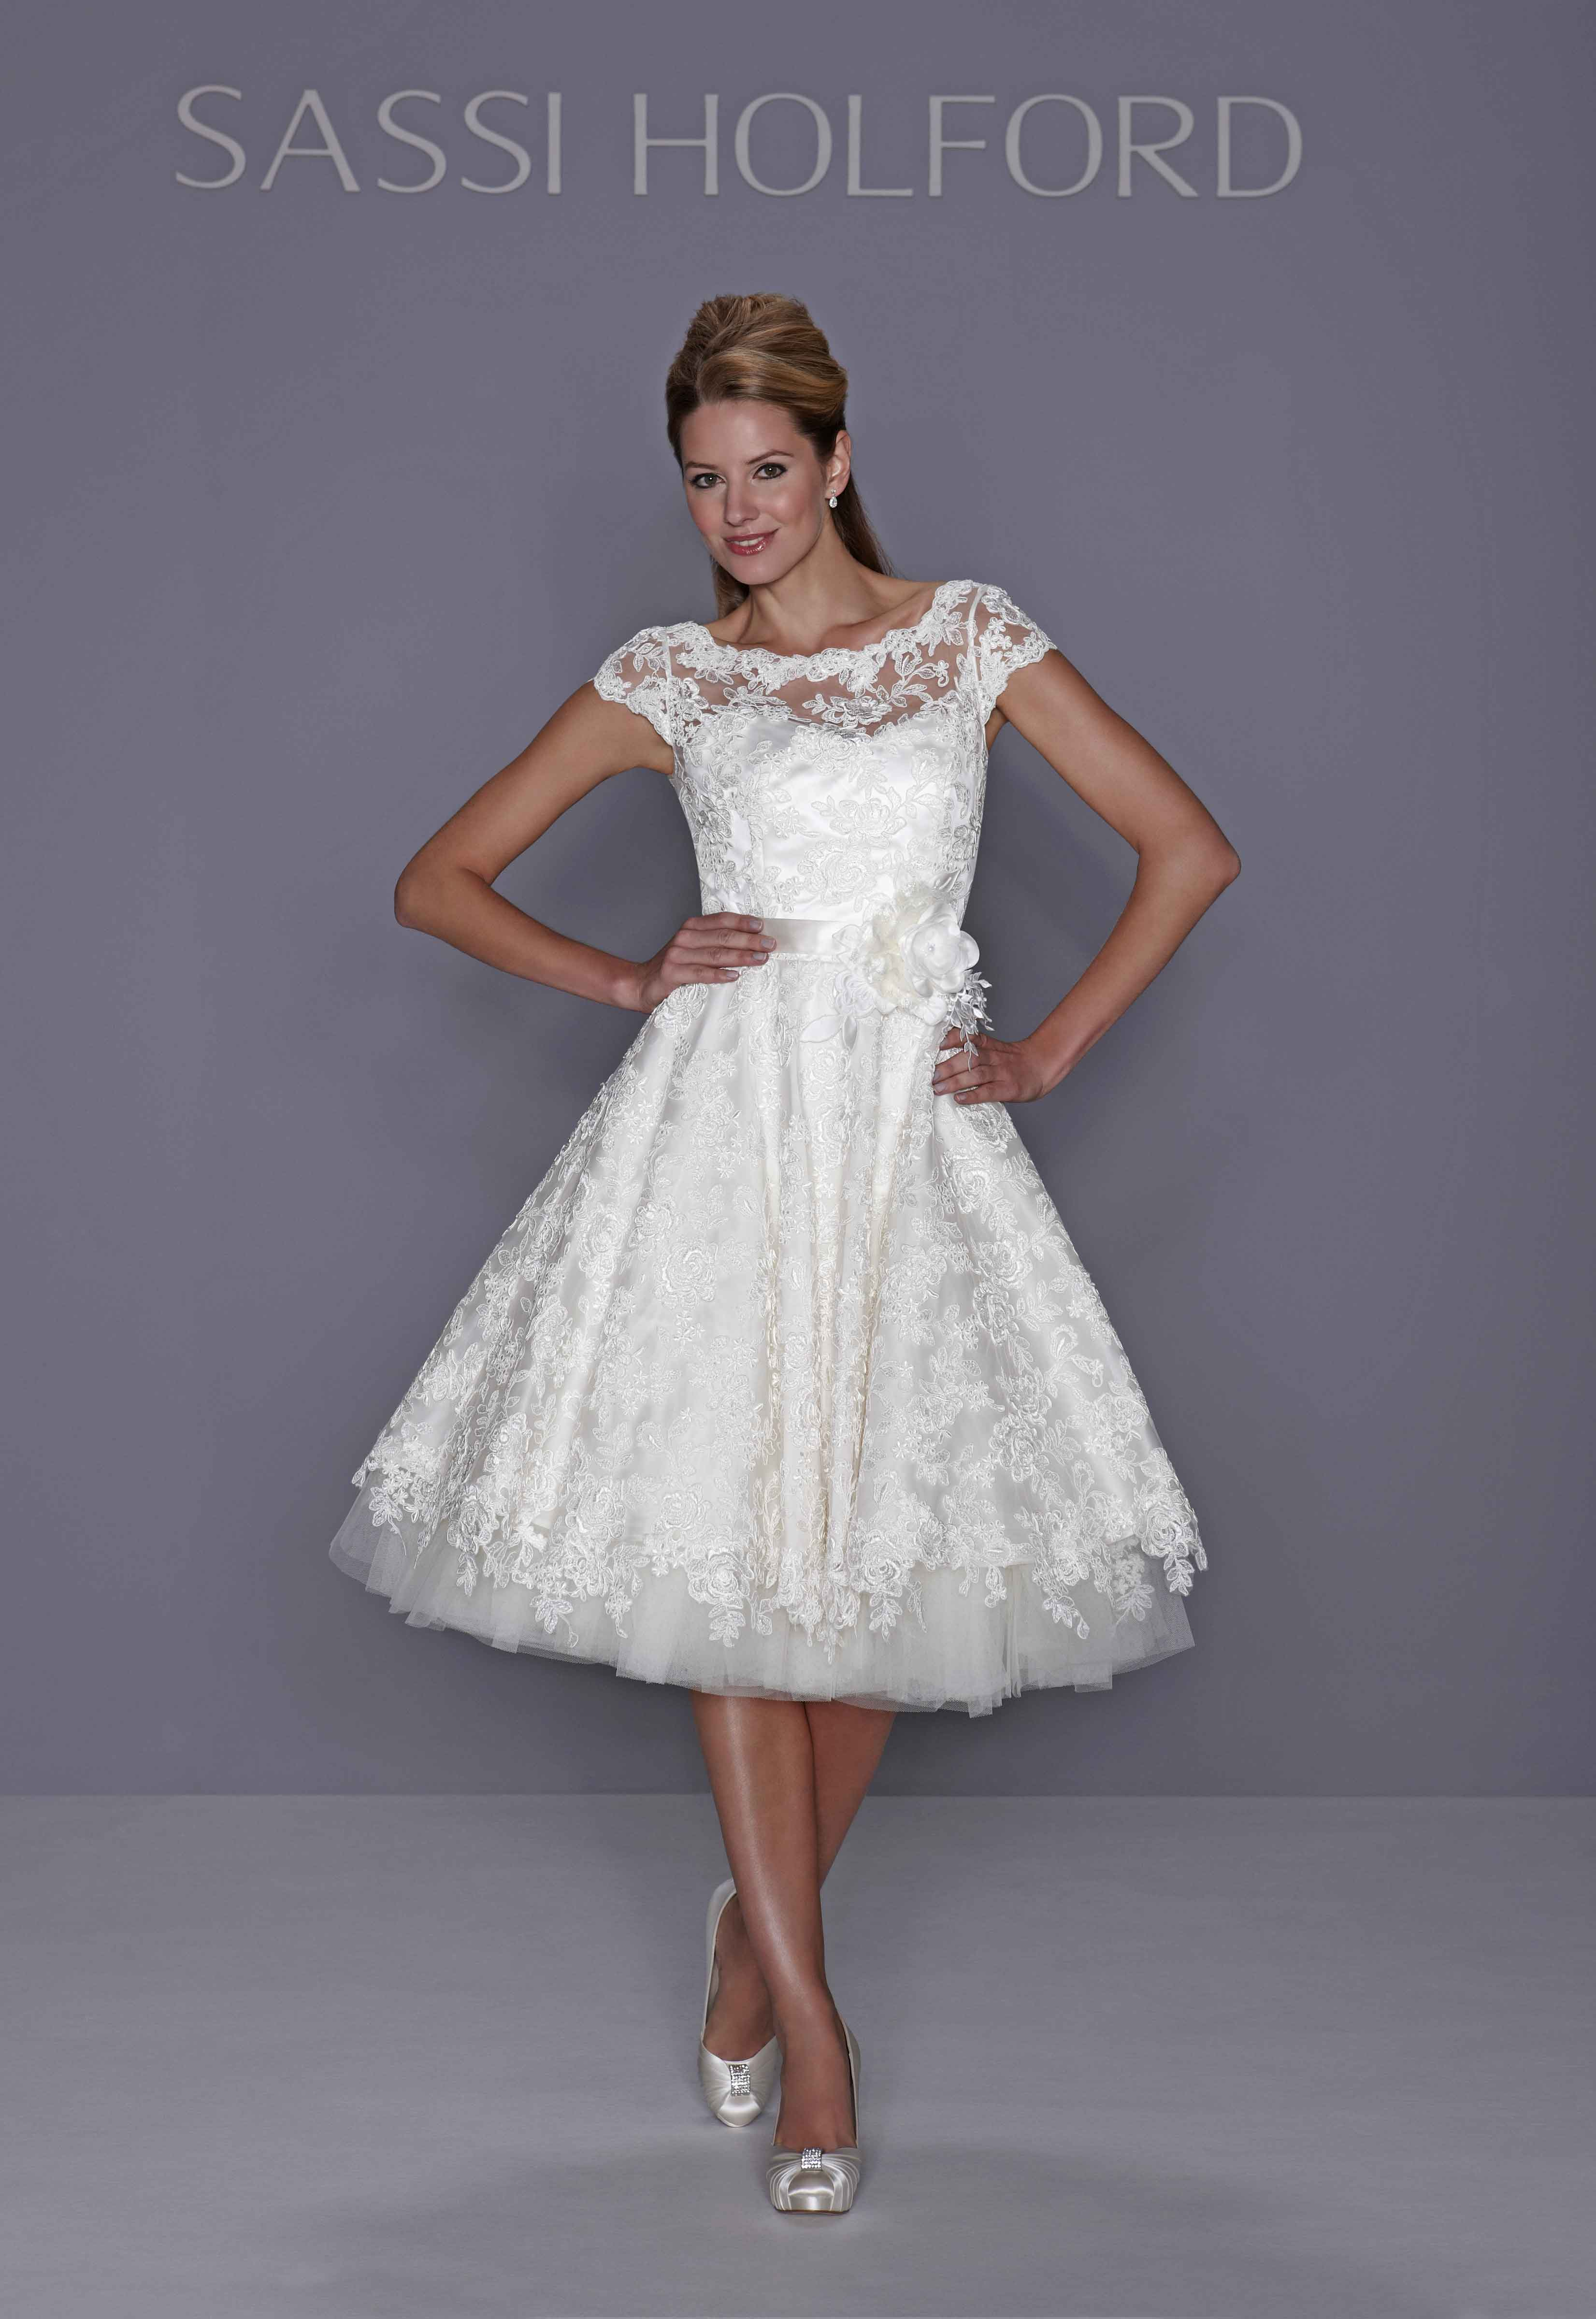 Wedding Dresses, Sweetheart Wedding Dresses, Lace Wedding Dresses, Fashion, Classic, Fun, Lace, Sweetheart, Short, Belt, Tulle, Sassi holford, Full skirt, Reception dress, Short Wedding Dresses, Classic Wedding Dresses, lace sleeves, tulle wedding dresses